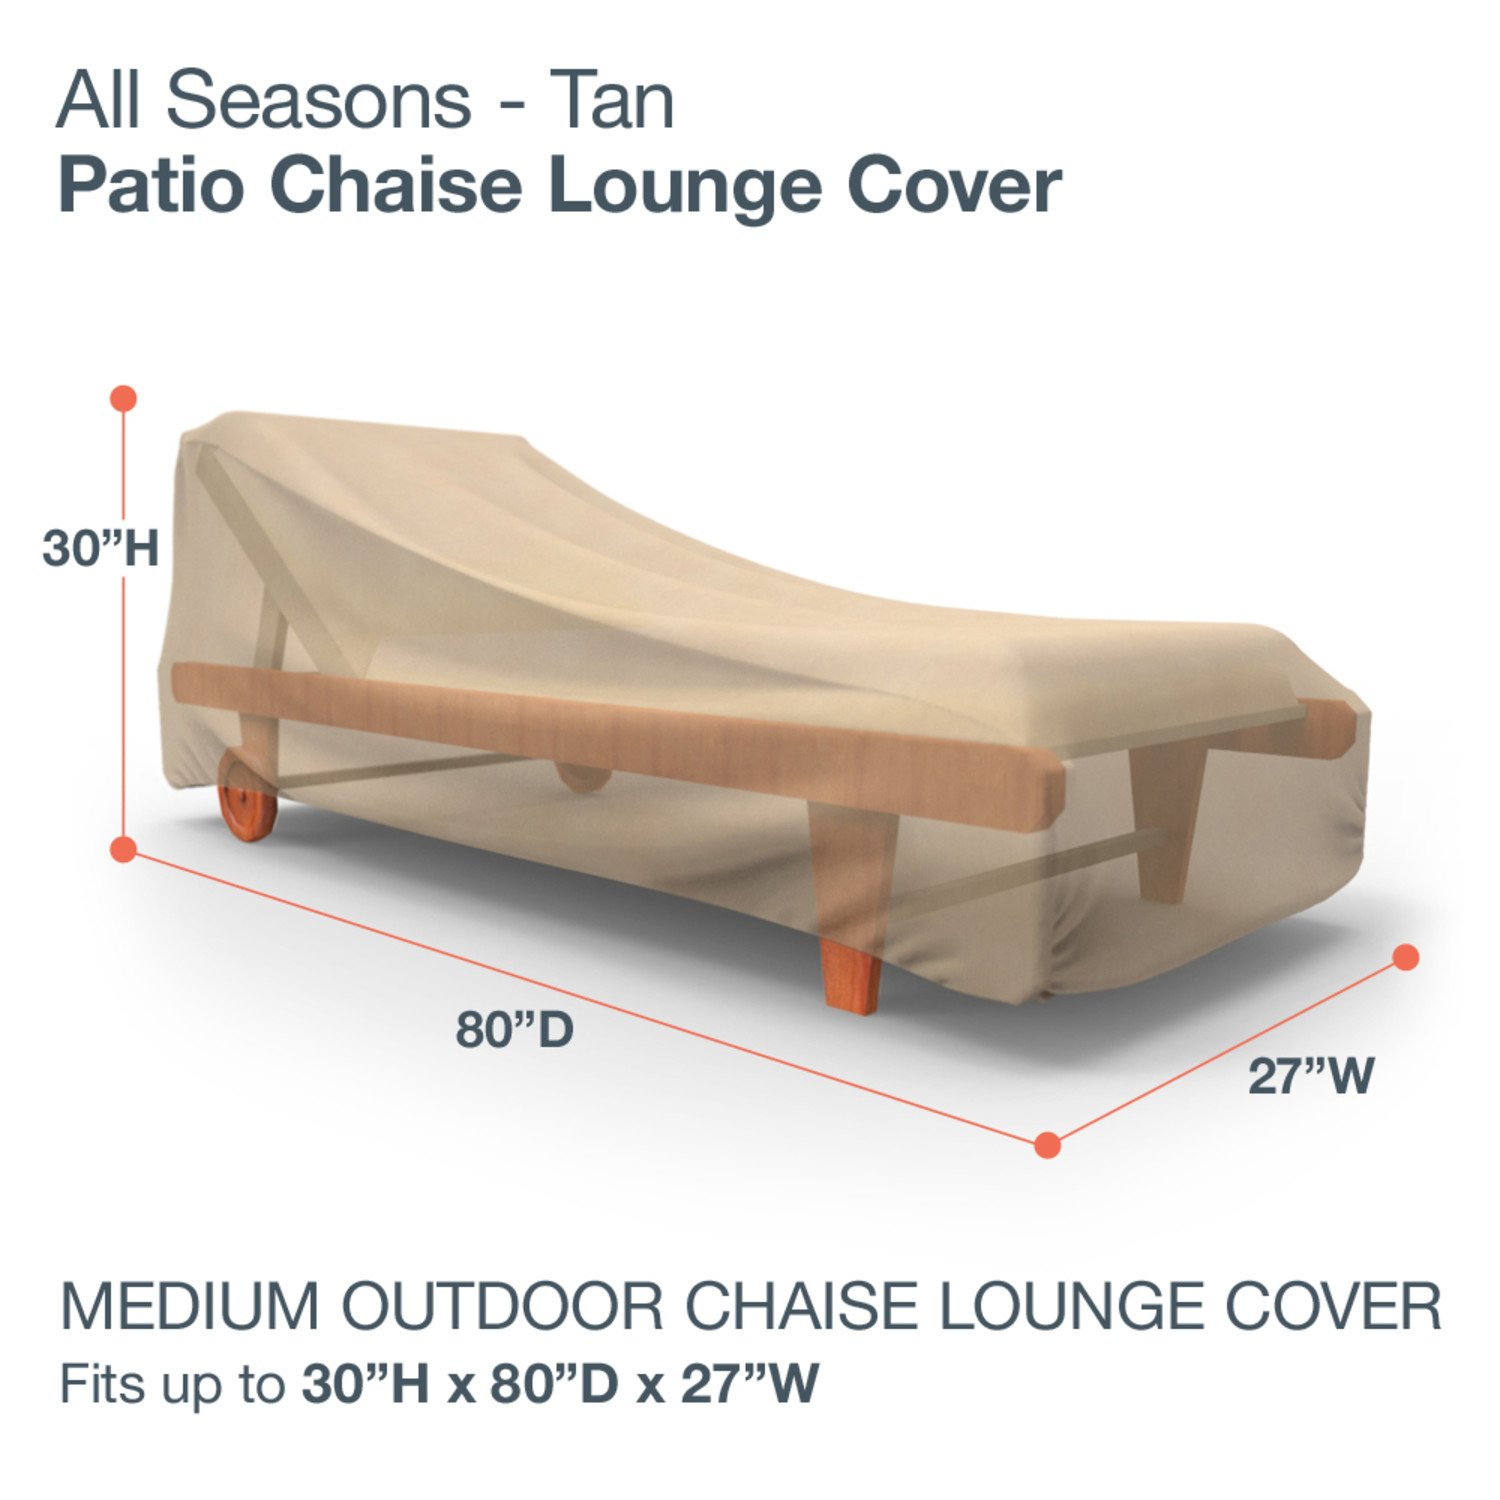 Amazon.com : Budge All Seasons Patio Chaise Lounge Cover, Medium (Tan) : Patio  Chaise Lounge Covers : Garden U0026 Outdoor